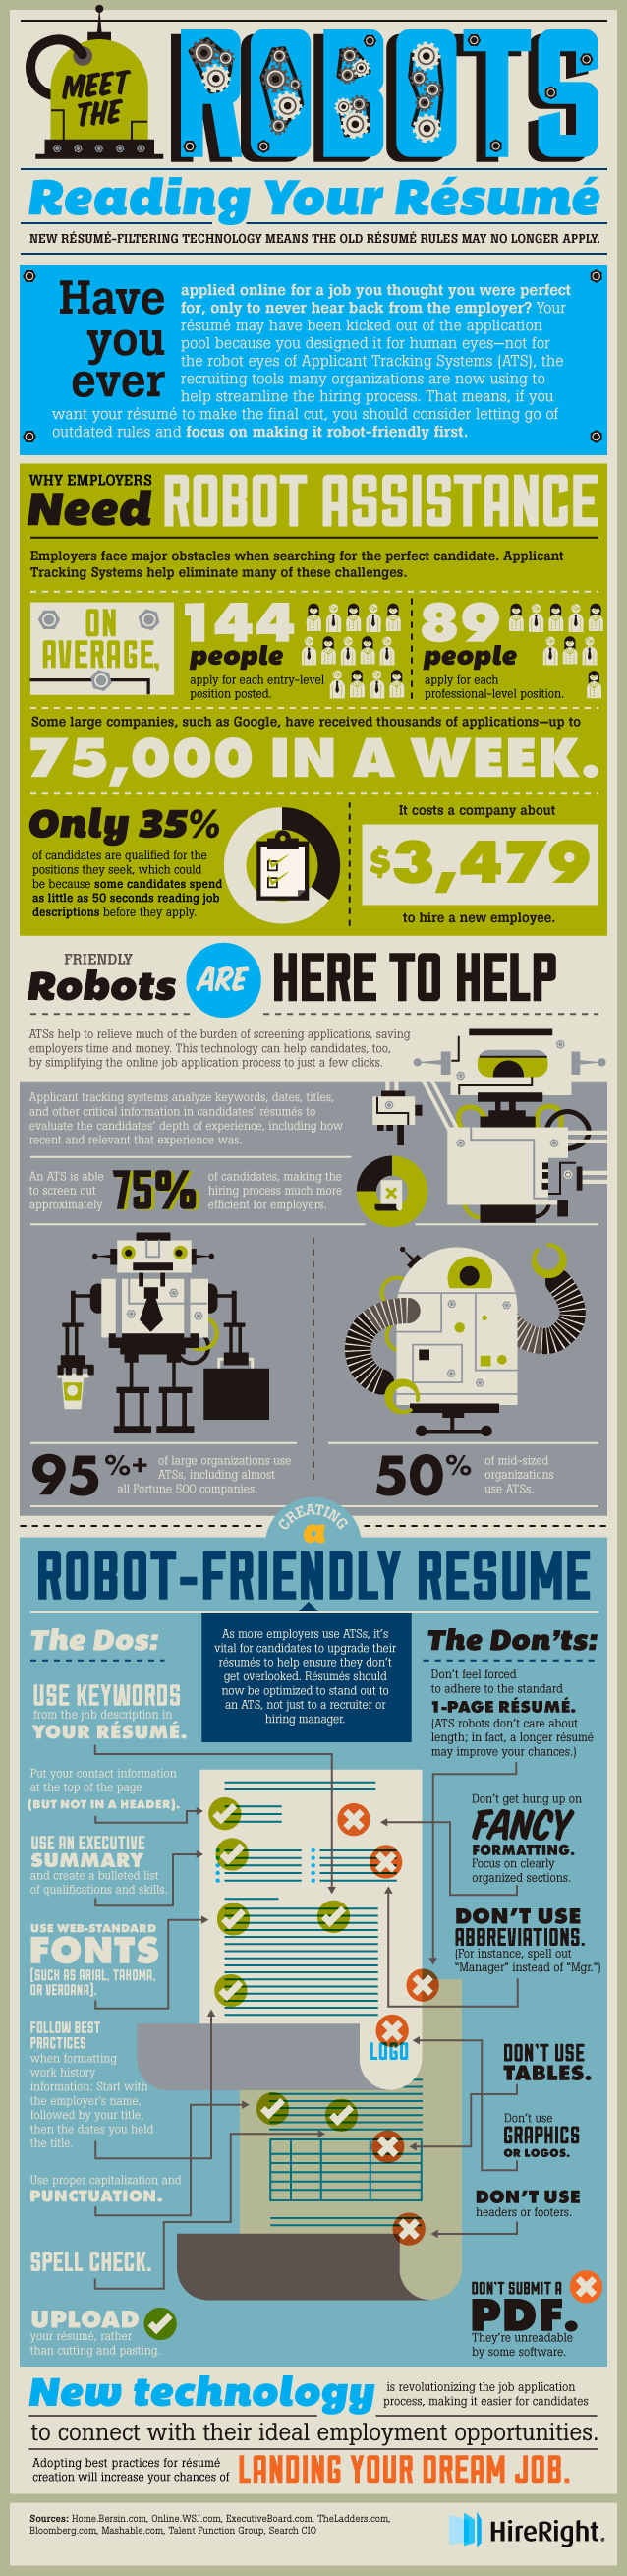 Meet the Robots Reading Your Resume - An infographic by HireRight